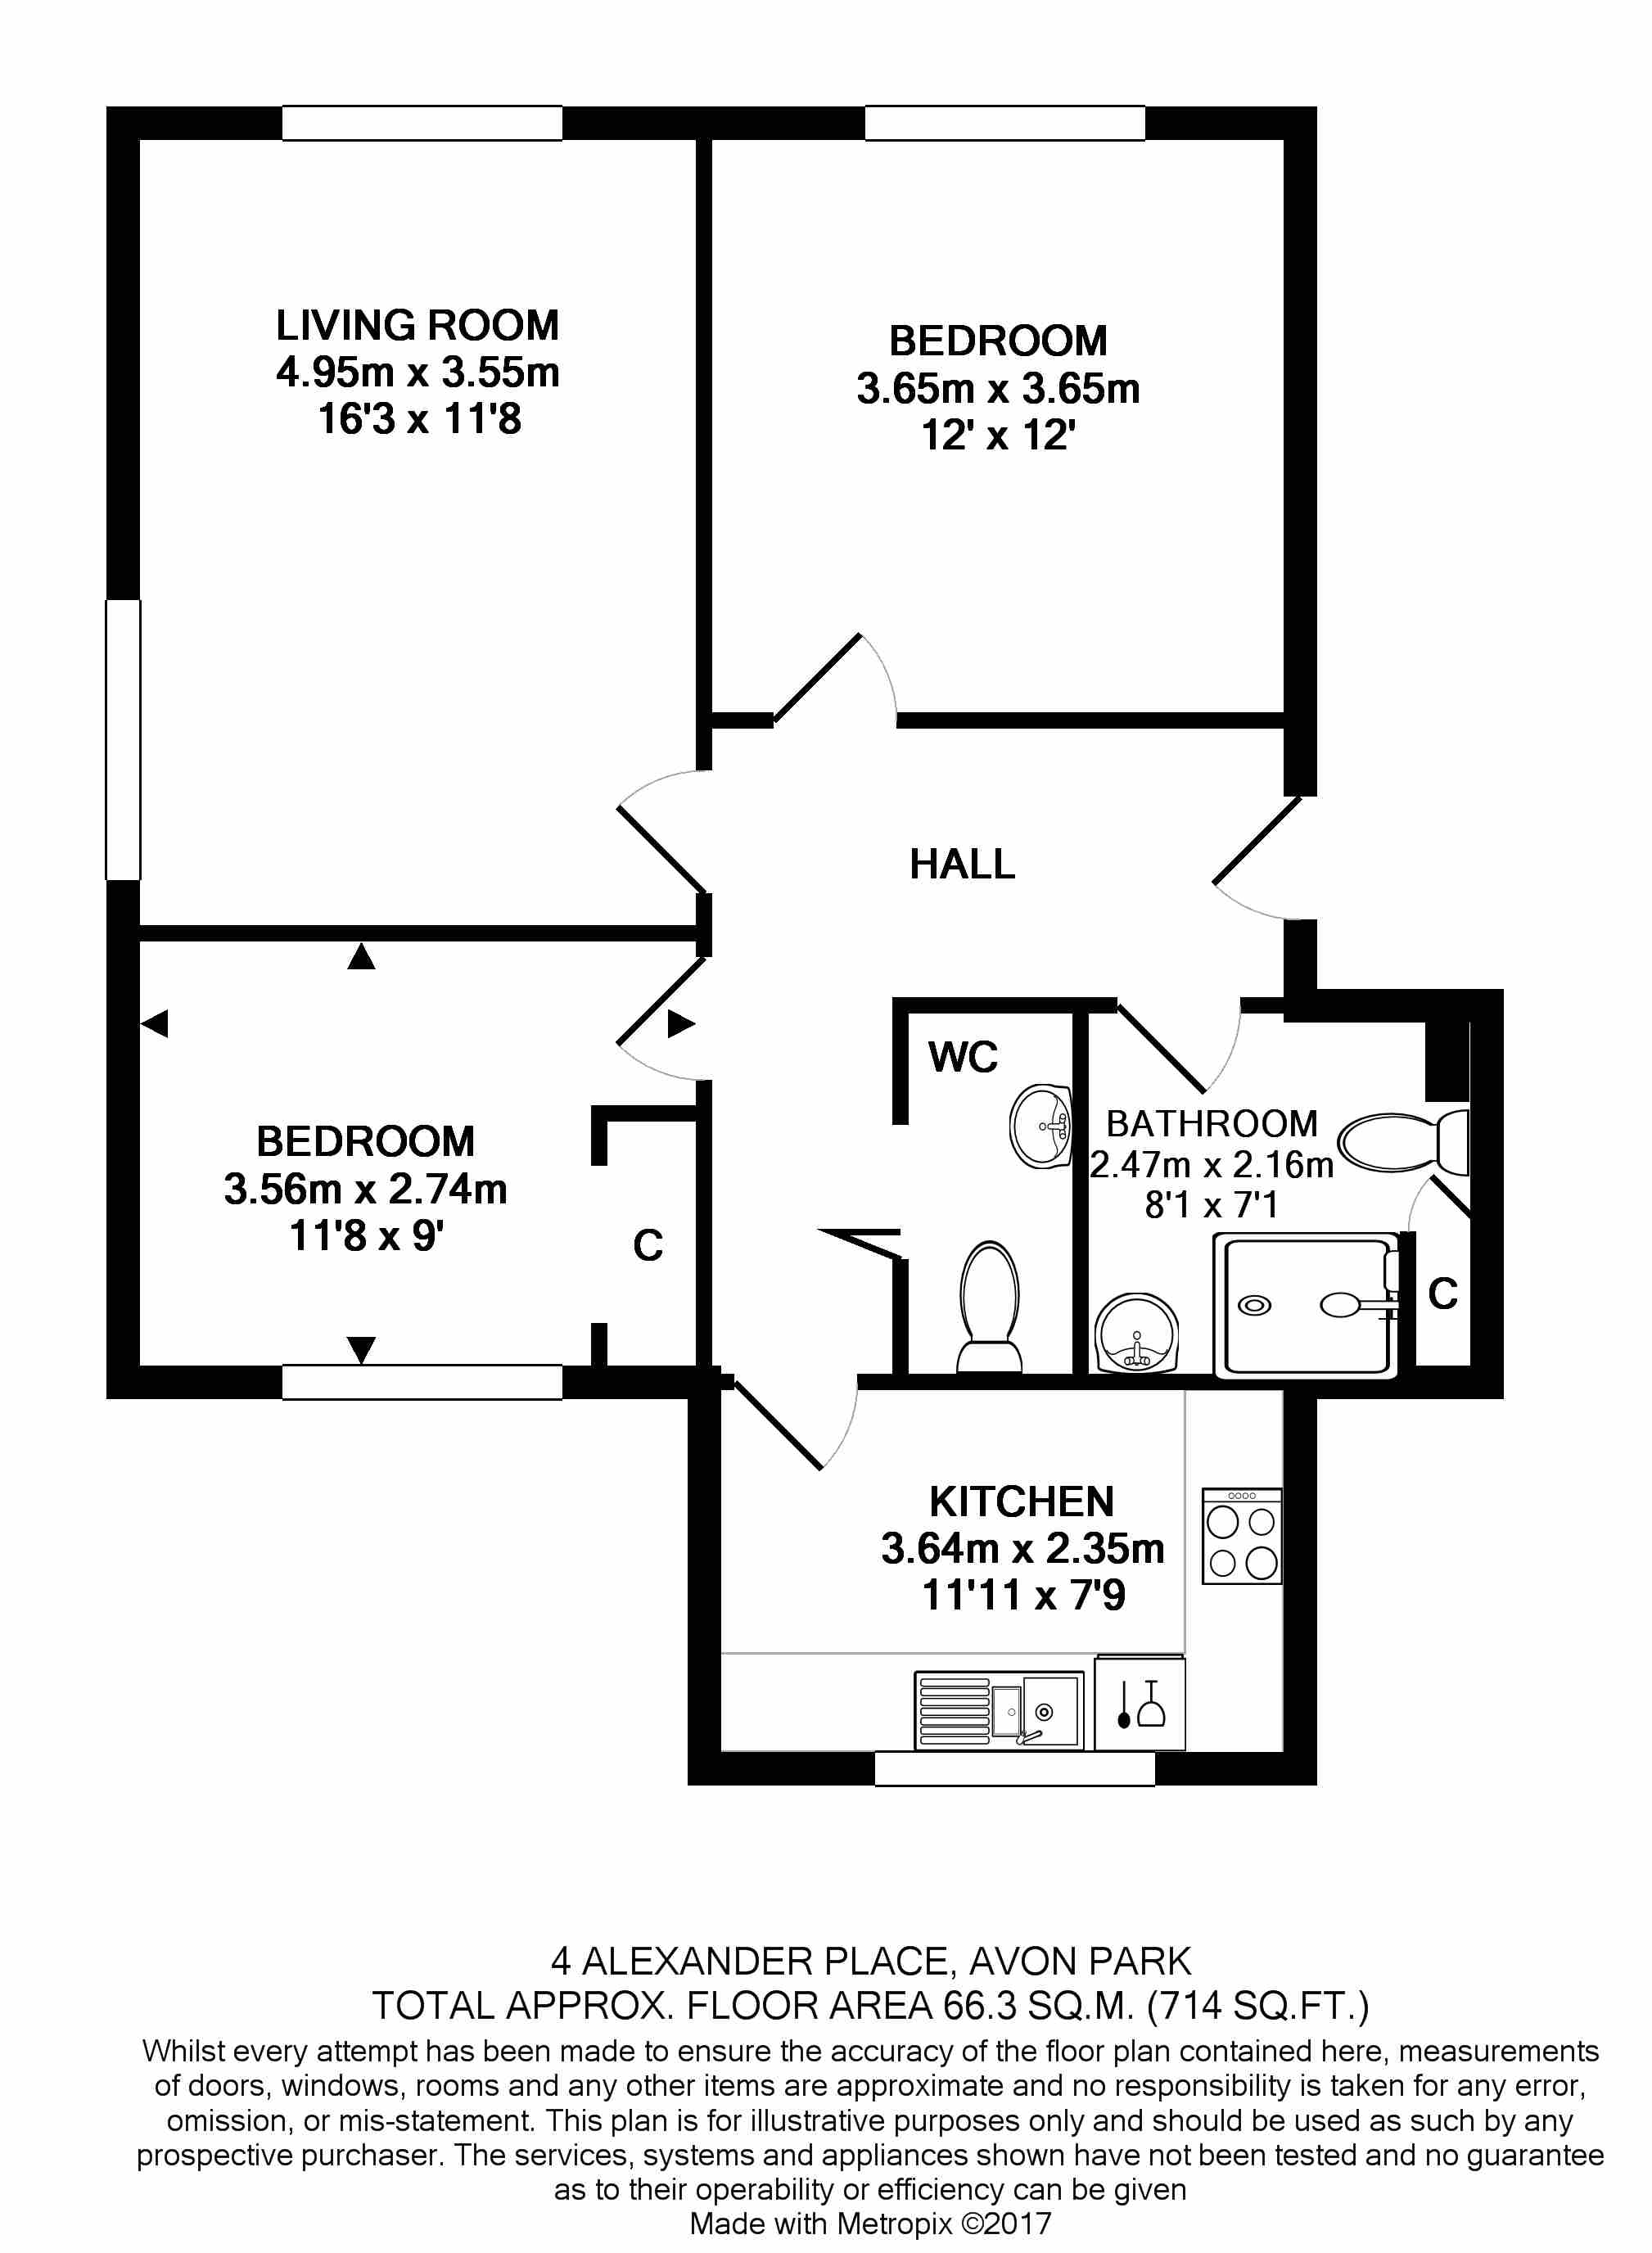 4 Alexander Place Floorplan